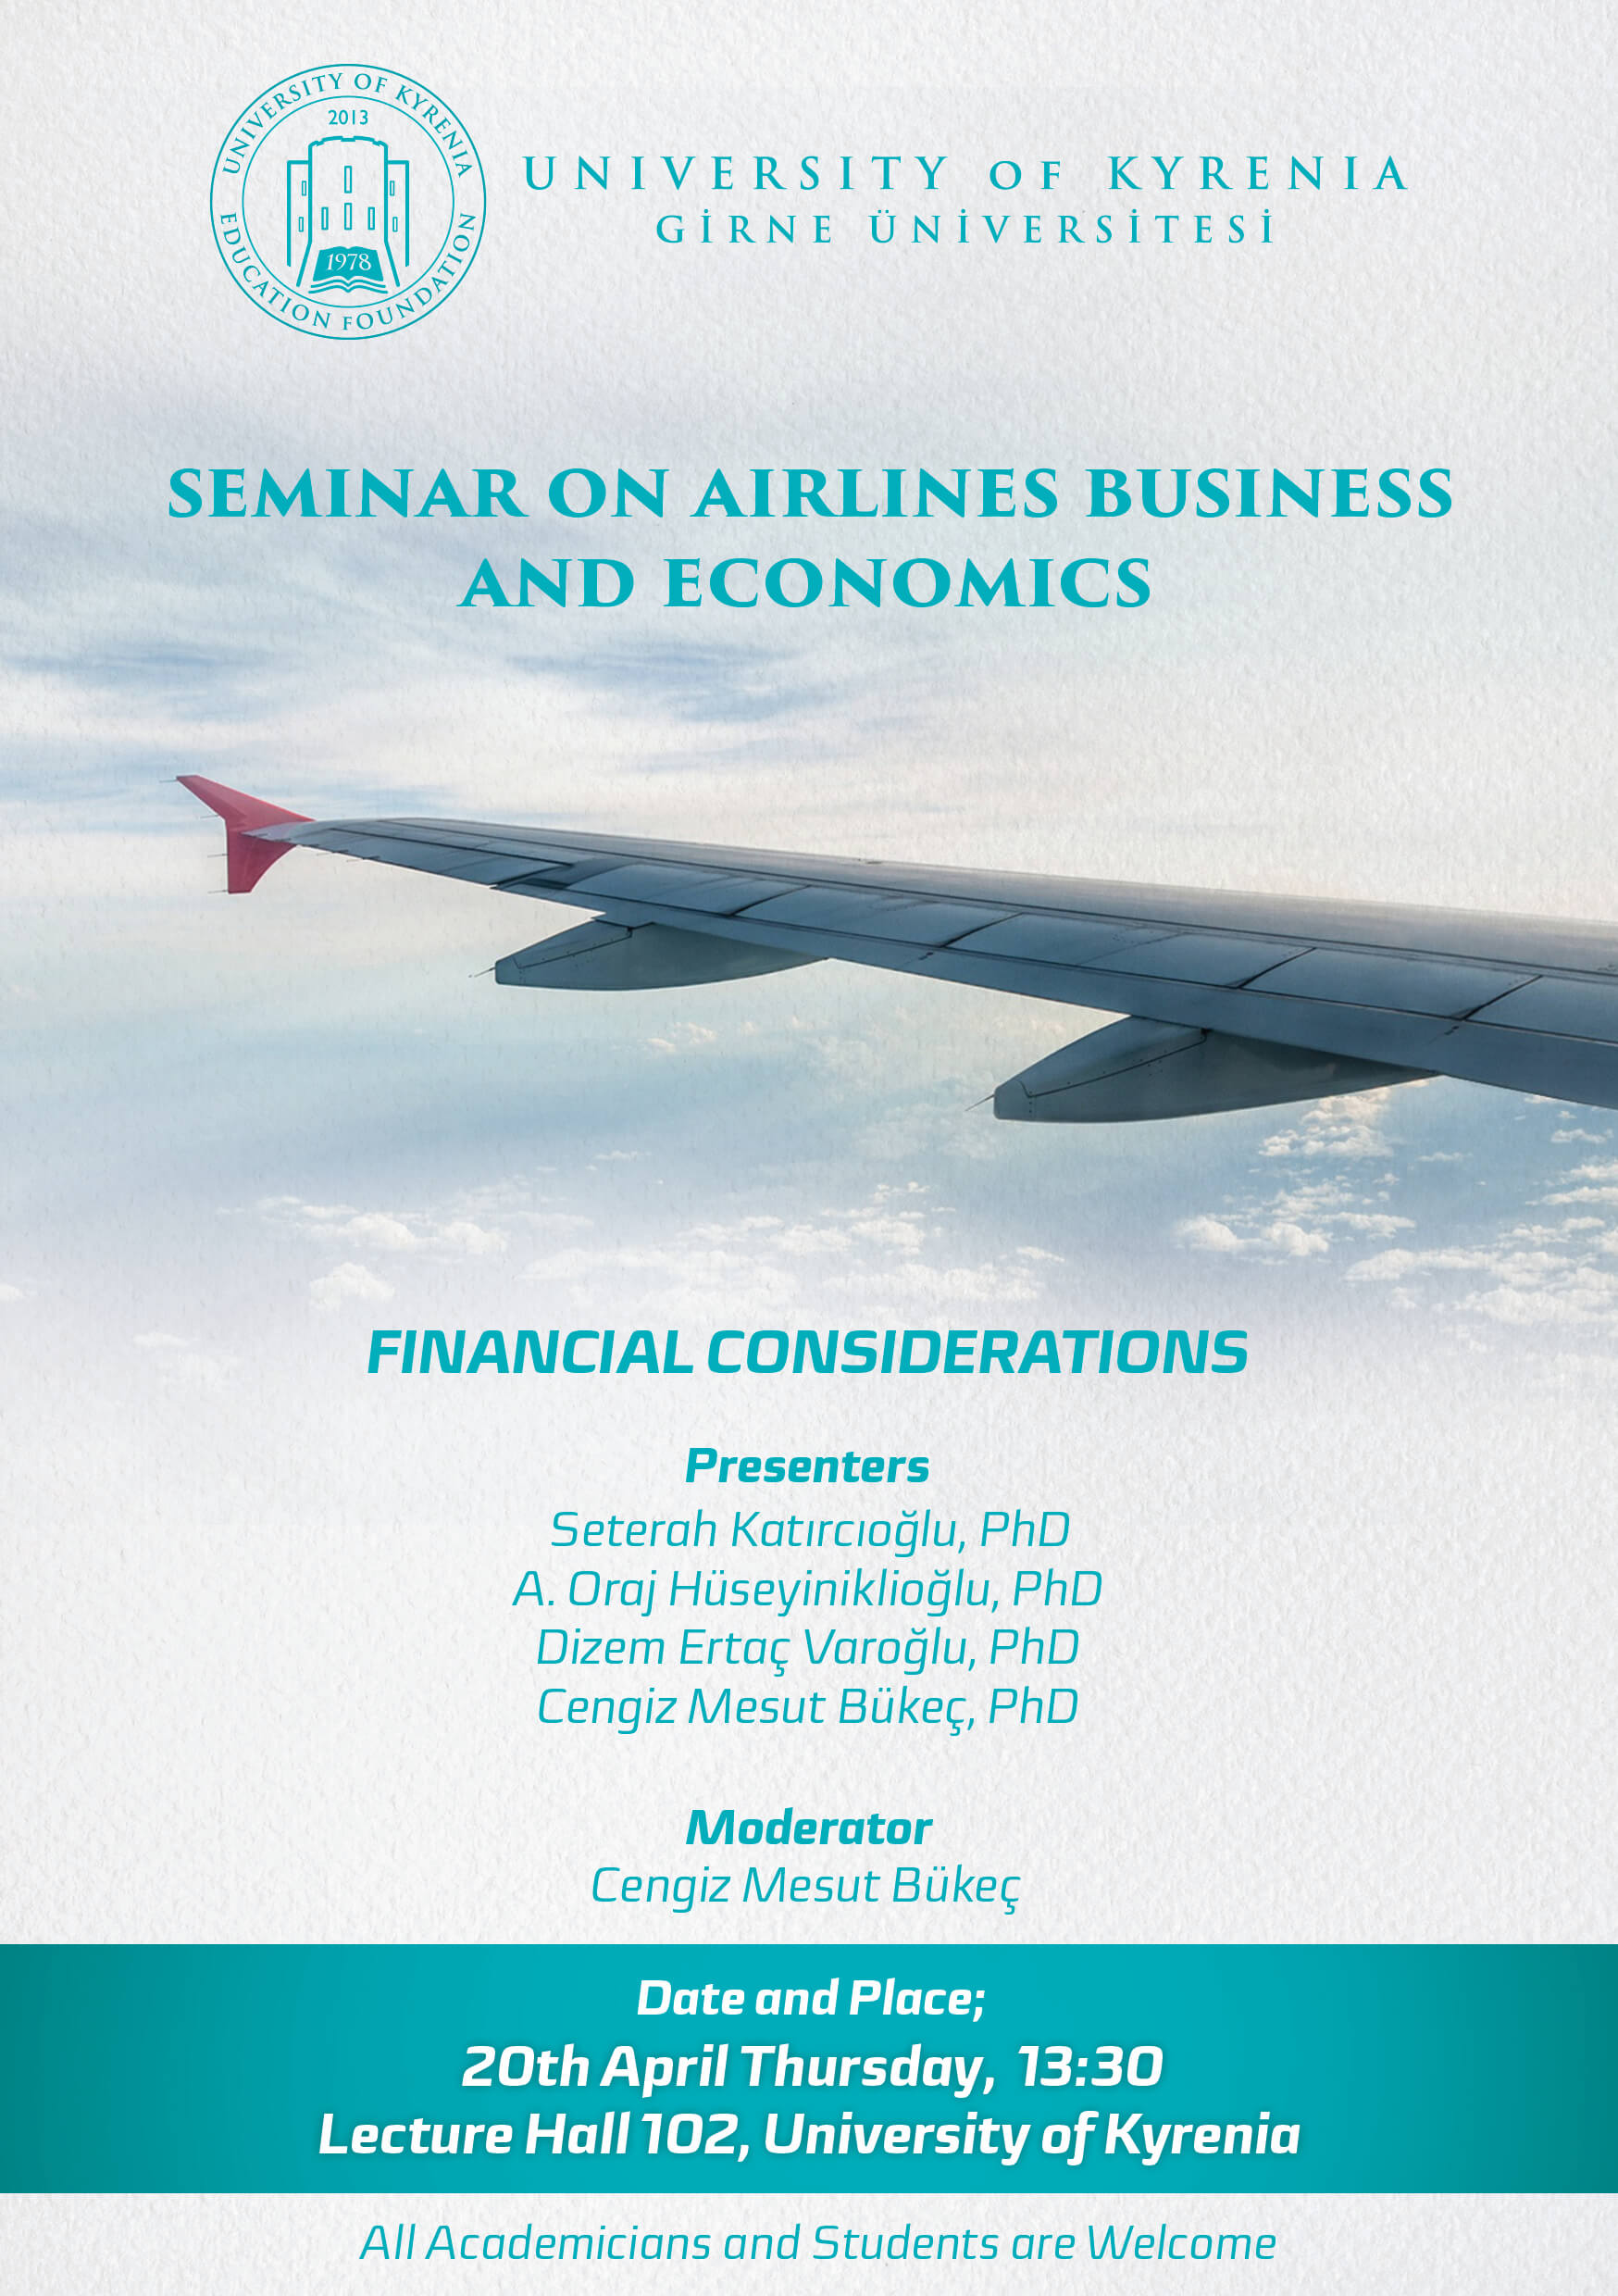 Seminar on Airlines Business and Economics